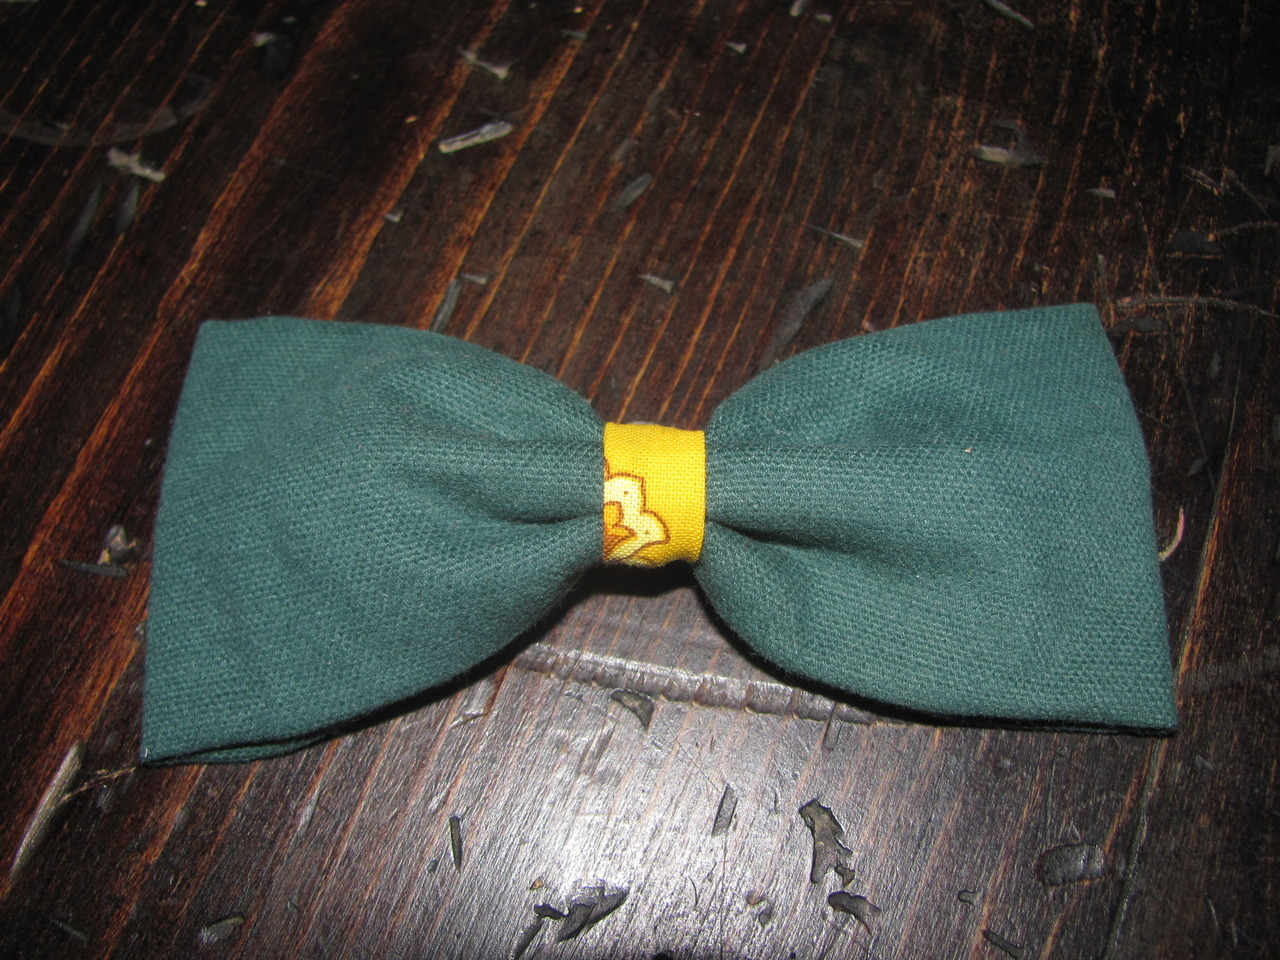 fashion-bows:   #.084 Forest green with yellow and blue pattern center Price for barrette/claw clasps: $5, without shipping. Price for bow tie: $6, without shipping. (shipping to be determined upon your whereabouts)  Any Questions? Just leave me questions or feedback in my ask box and I will get back to you ASAP!(: